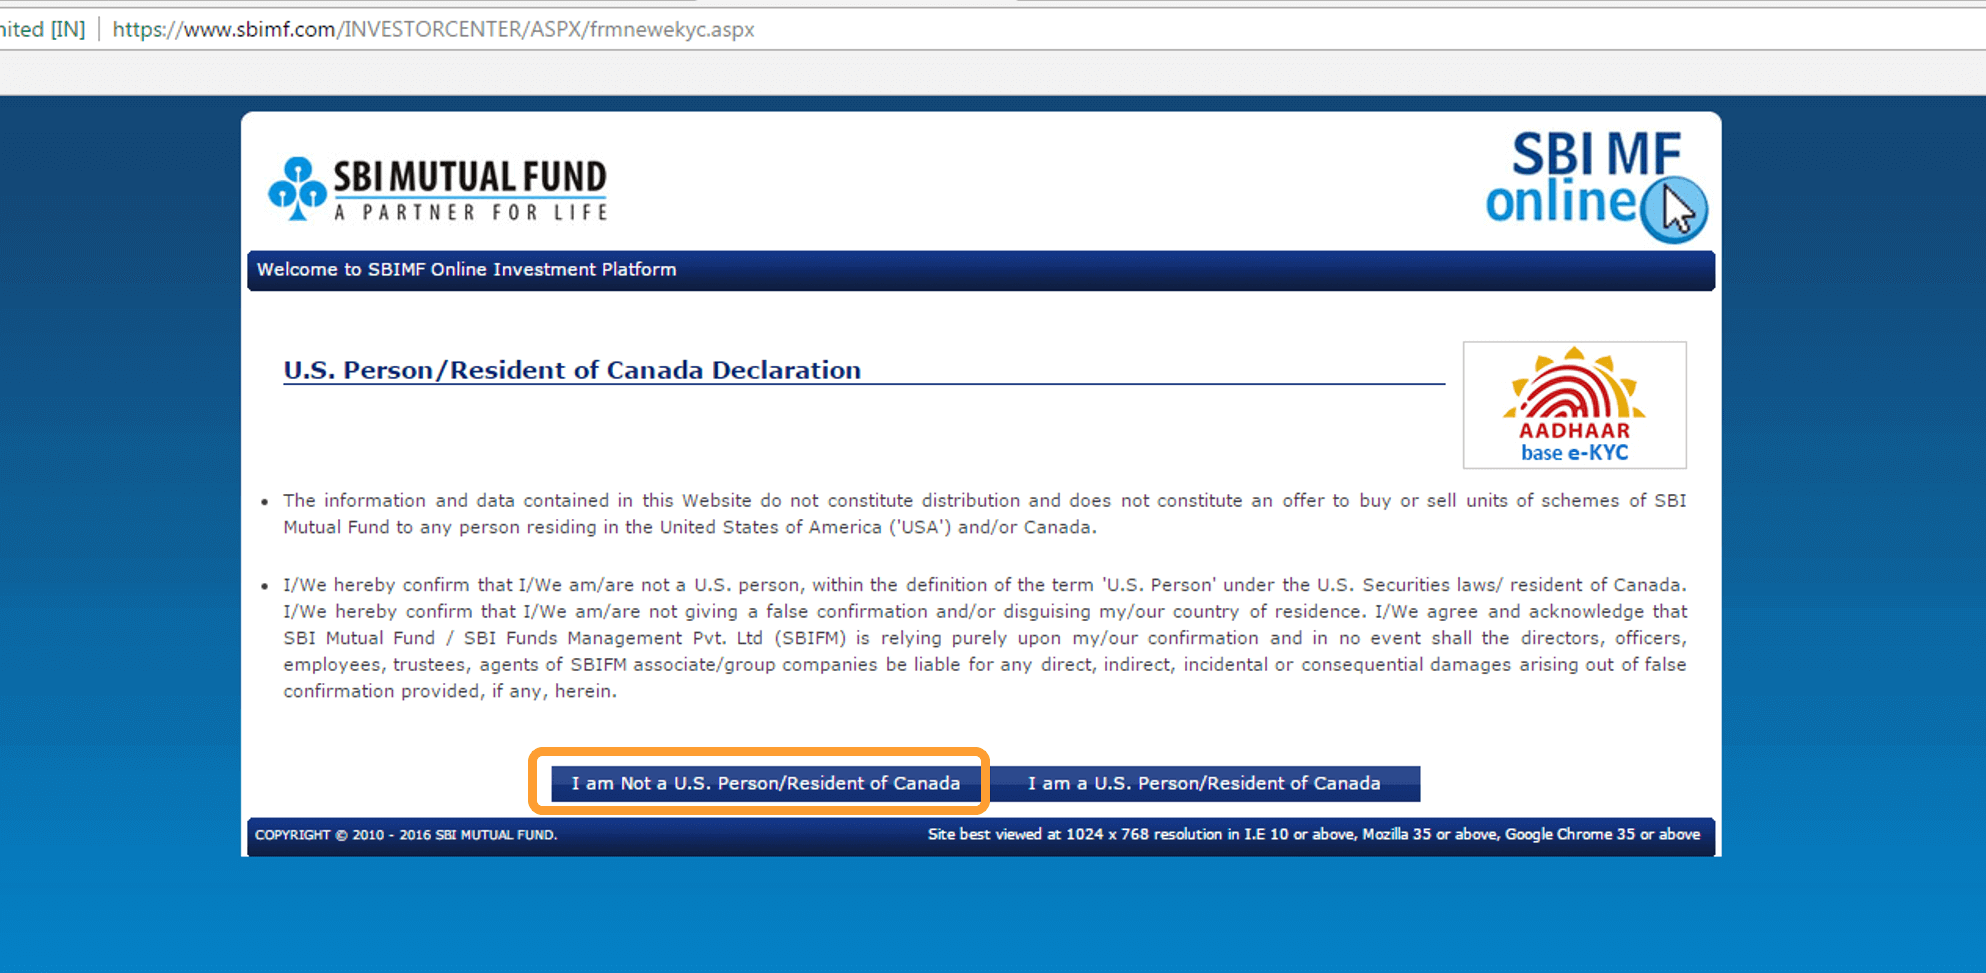 Aadhaar based ekyc online mutual funds